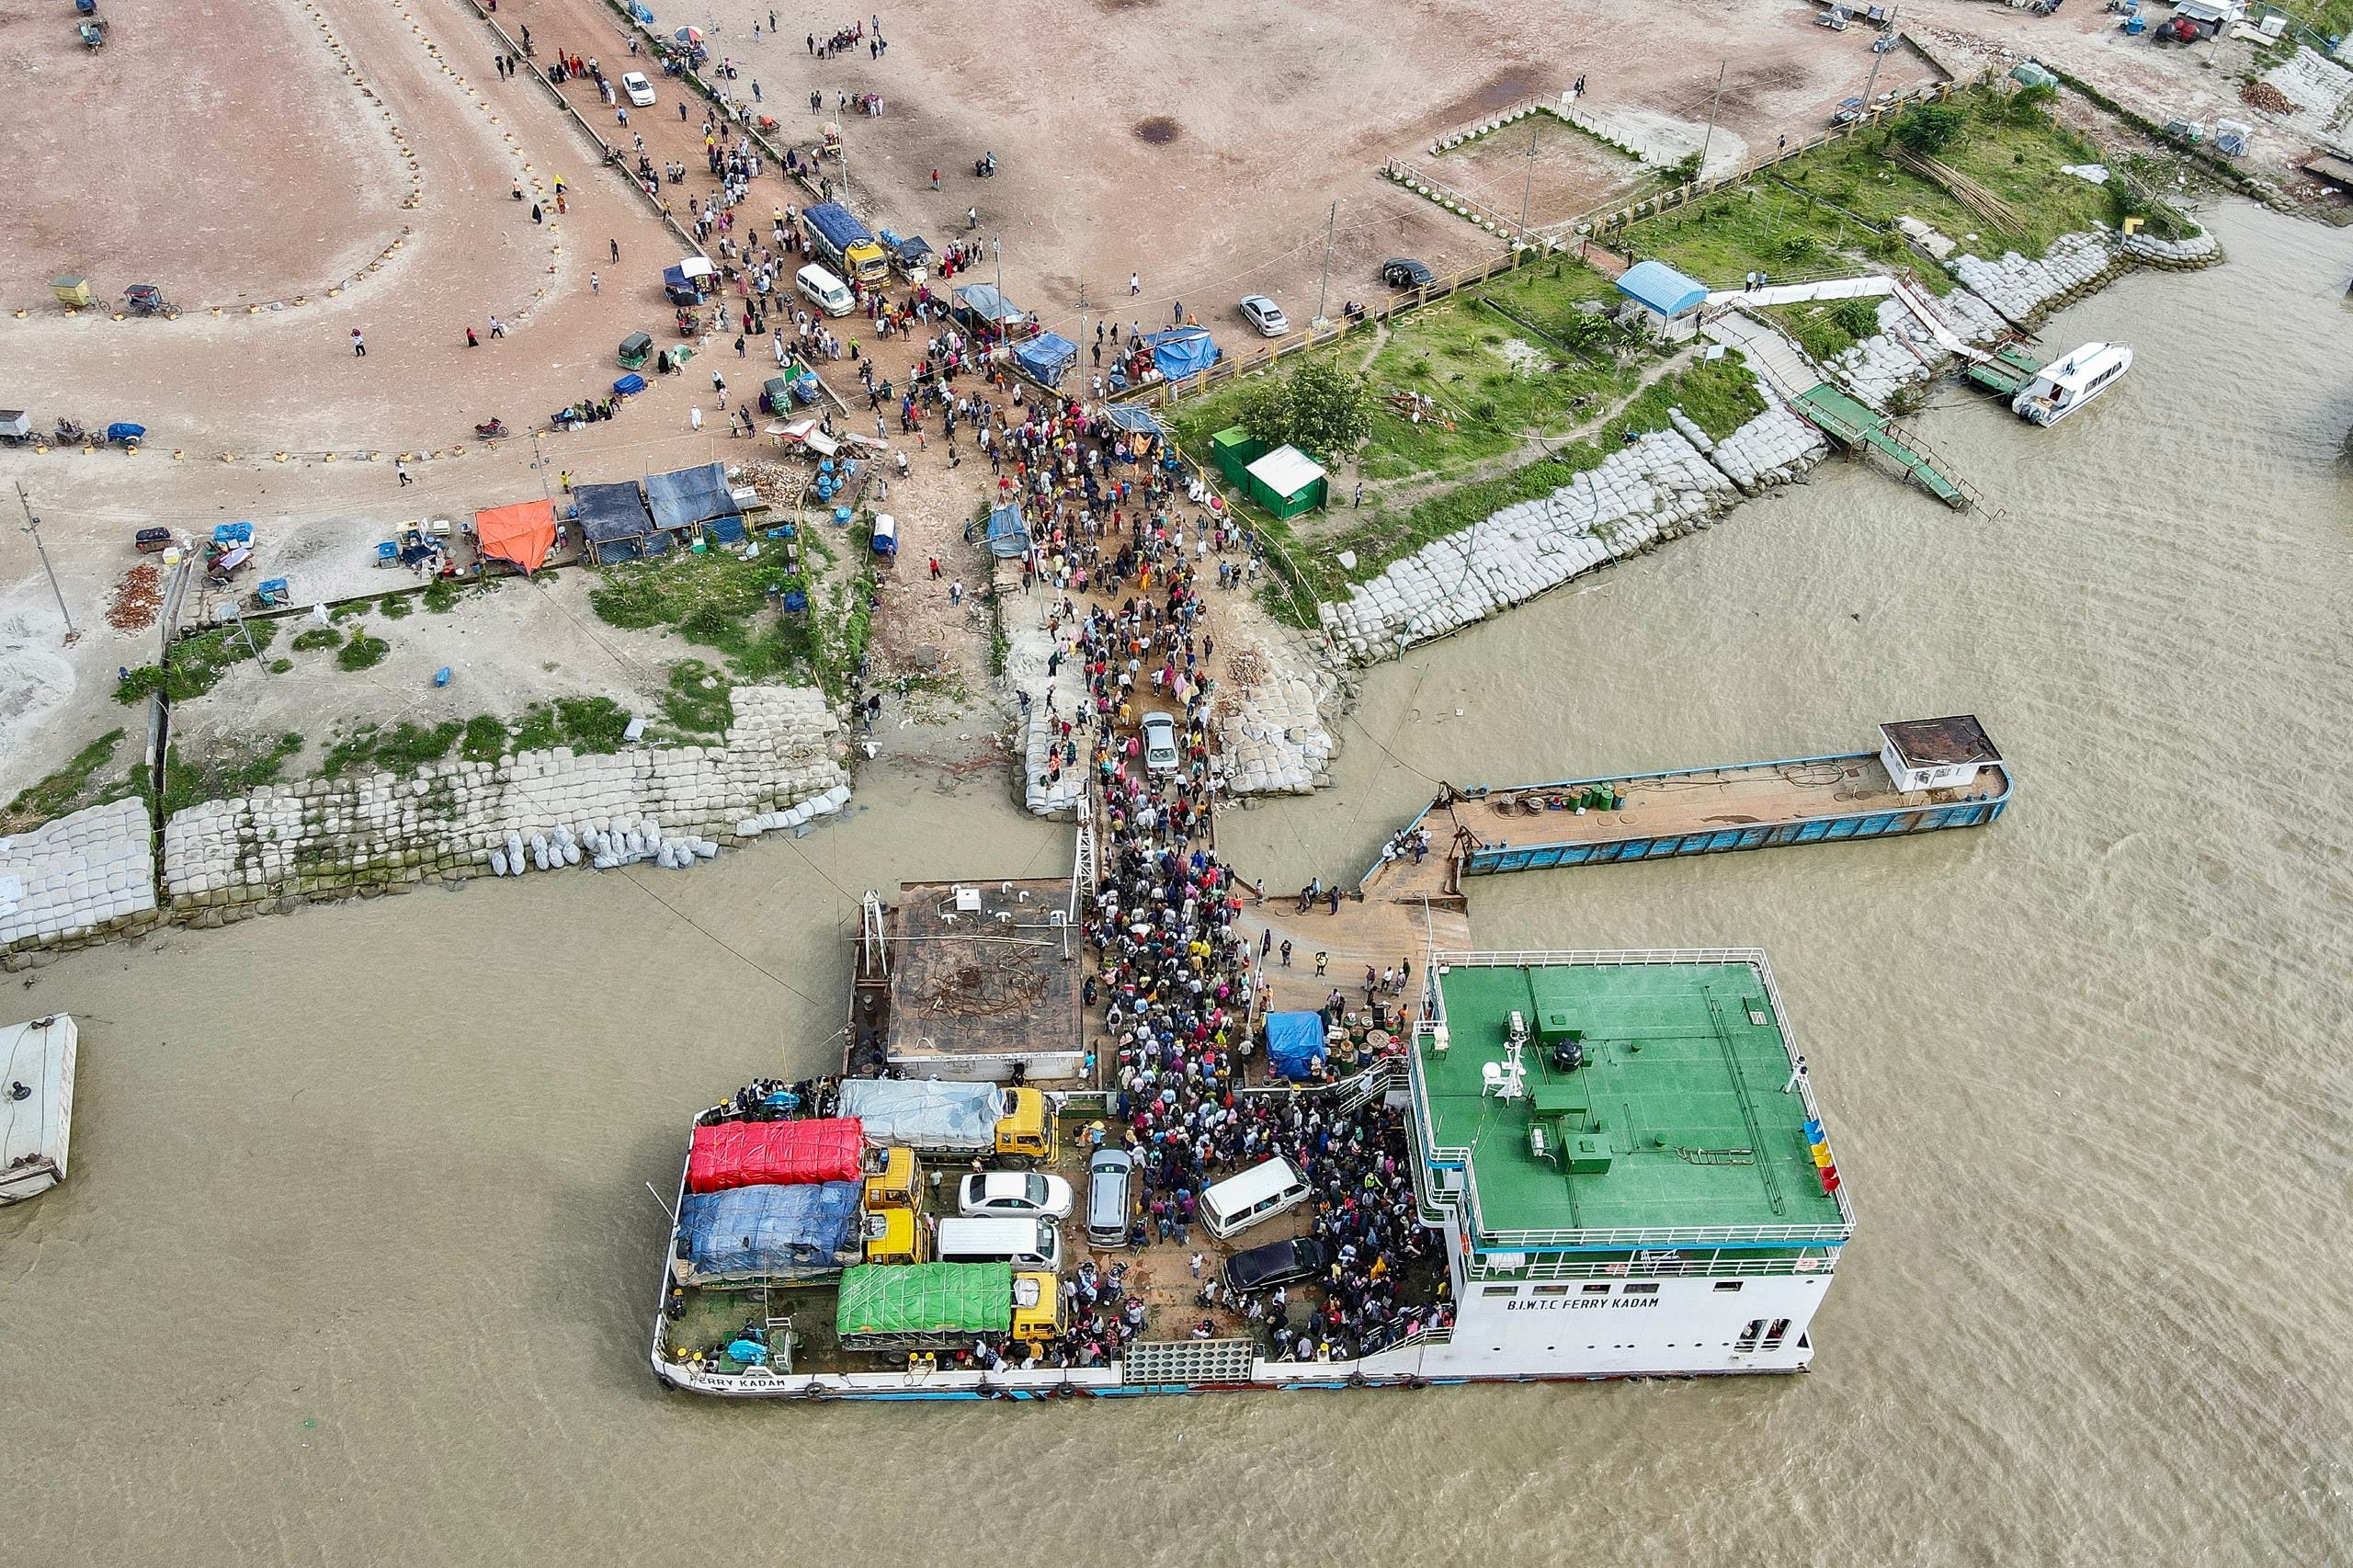 People wait to disembark from a ferry in Sreenagar on July 31, 2021 after they return to their work areas post the Bangladesh government relaxed the lockdown norms for all export oriented factories which were earlier imposed to curb the spread of COVID-19 coronavirus. (AFP)